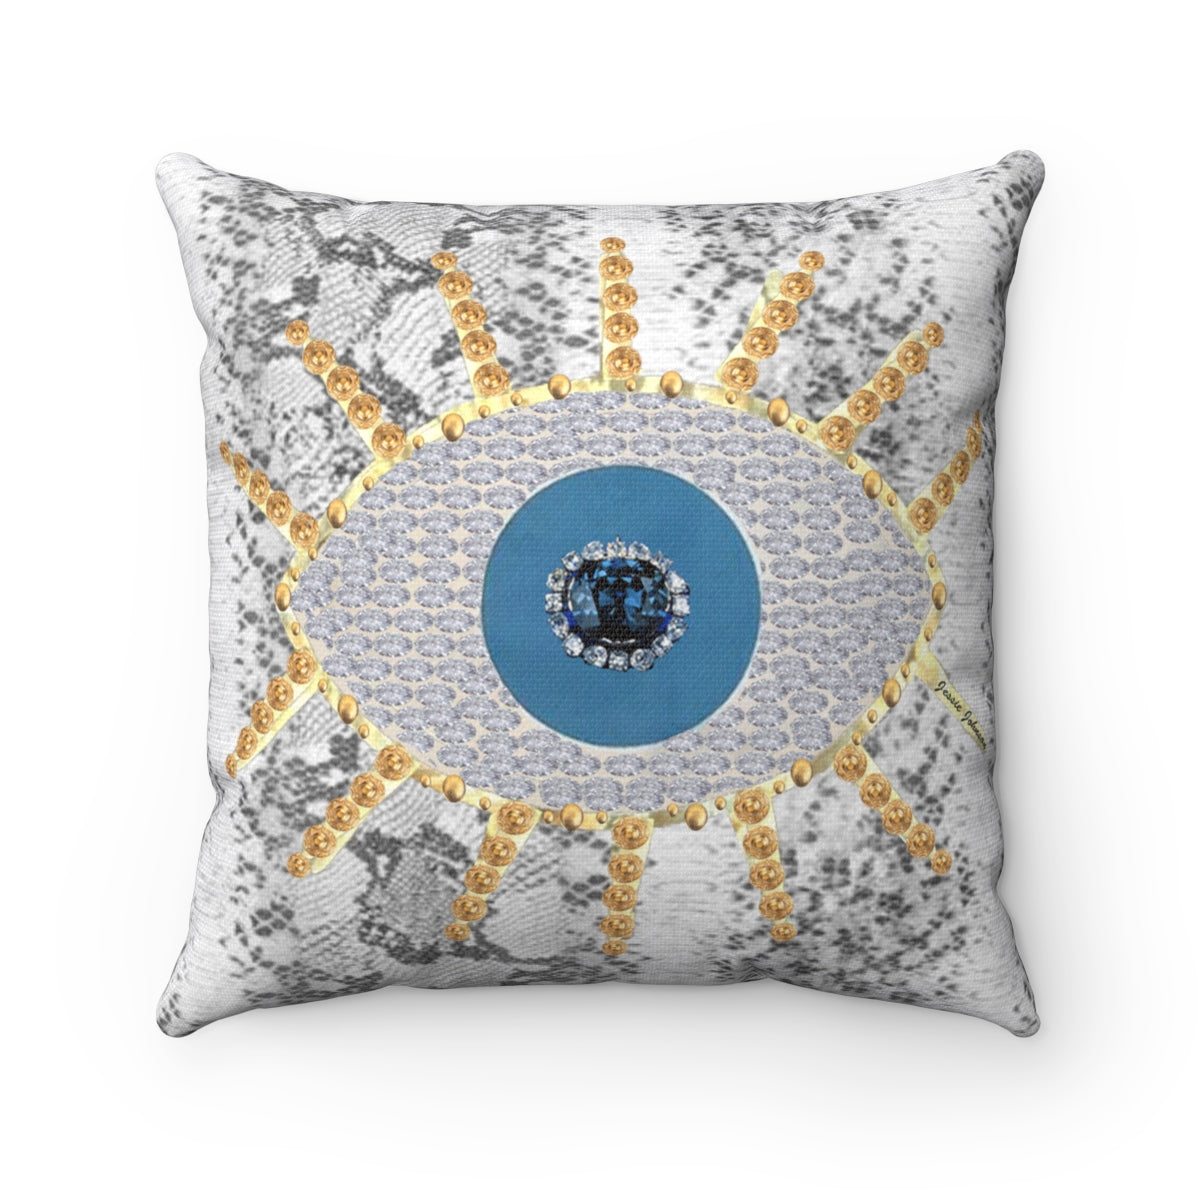 Spun Polyester Square Pillow Evil eye